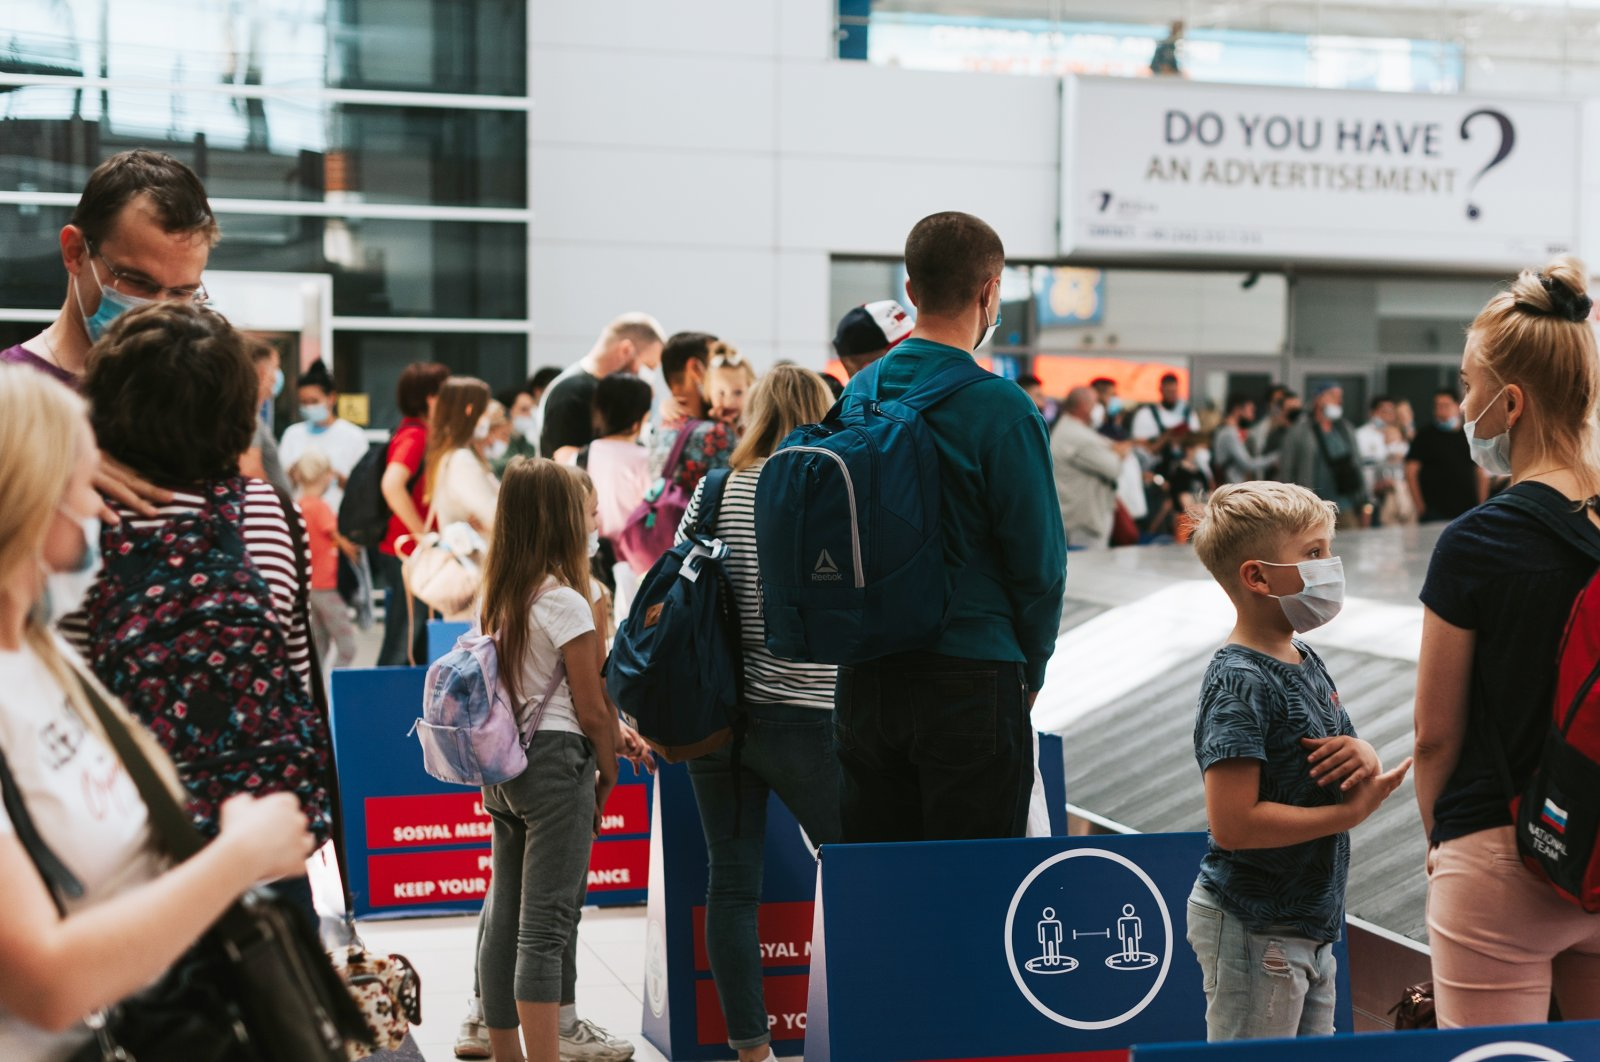 People wait for luggage claim at the Antalya International Airport, Antalya, southern Turkey, August 2020. (Shutterstock Photo)